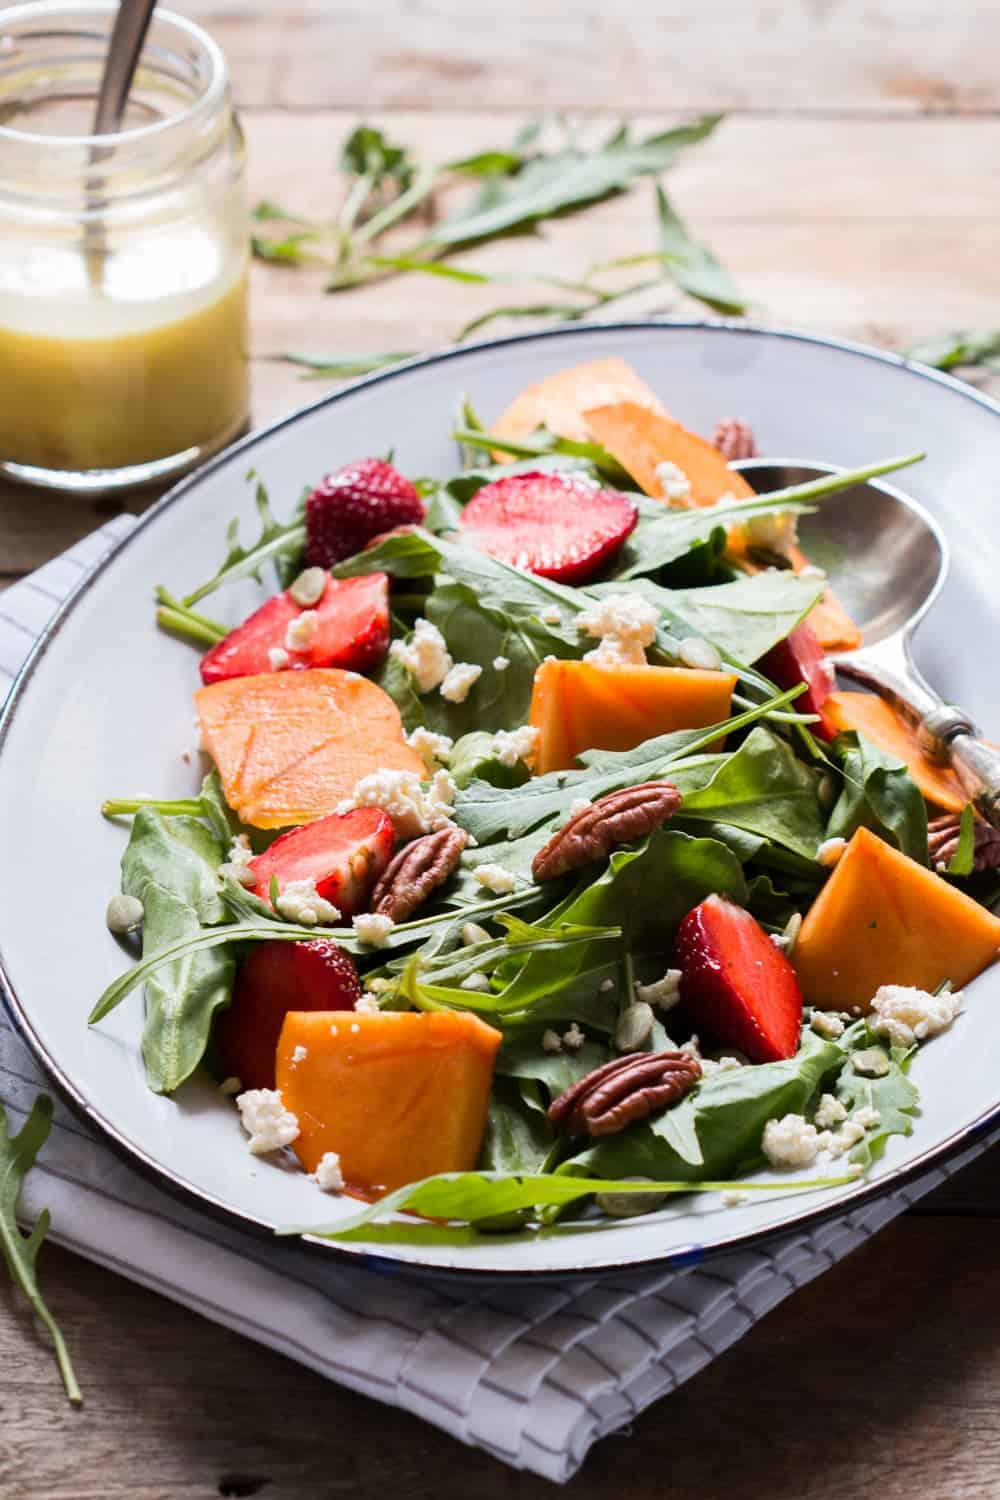 Greens Persimmon Ricotta Salad